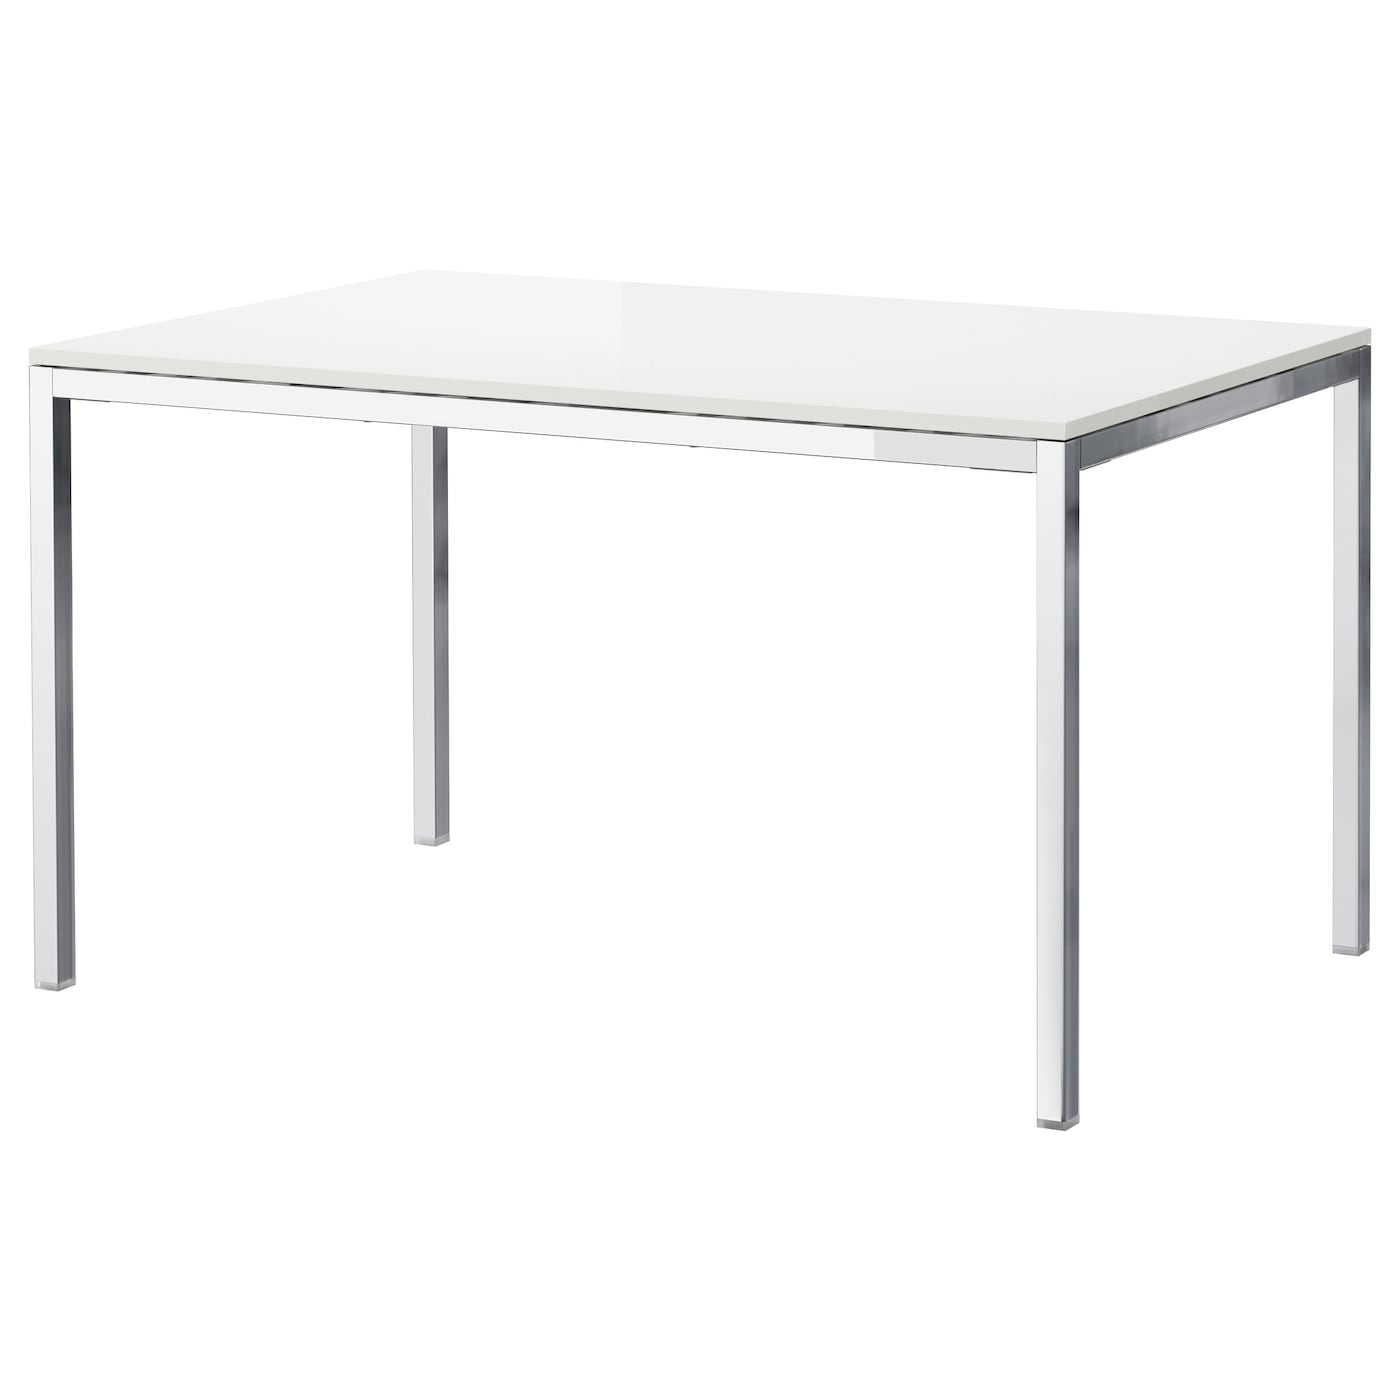 IKEA TORSBY Table